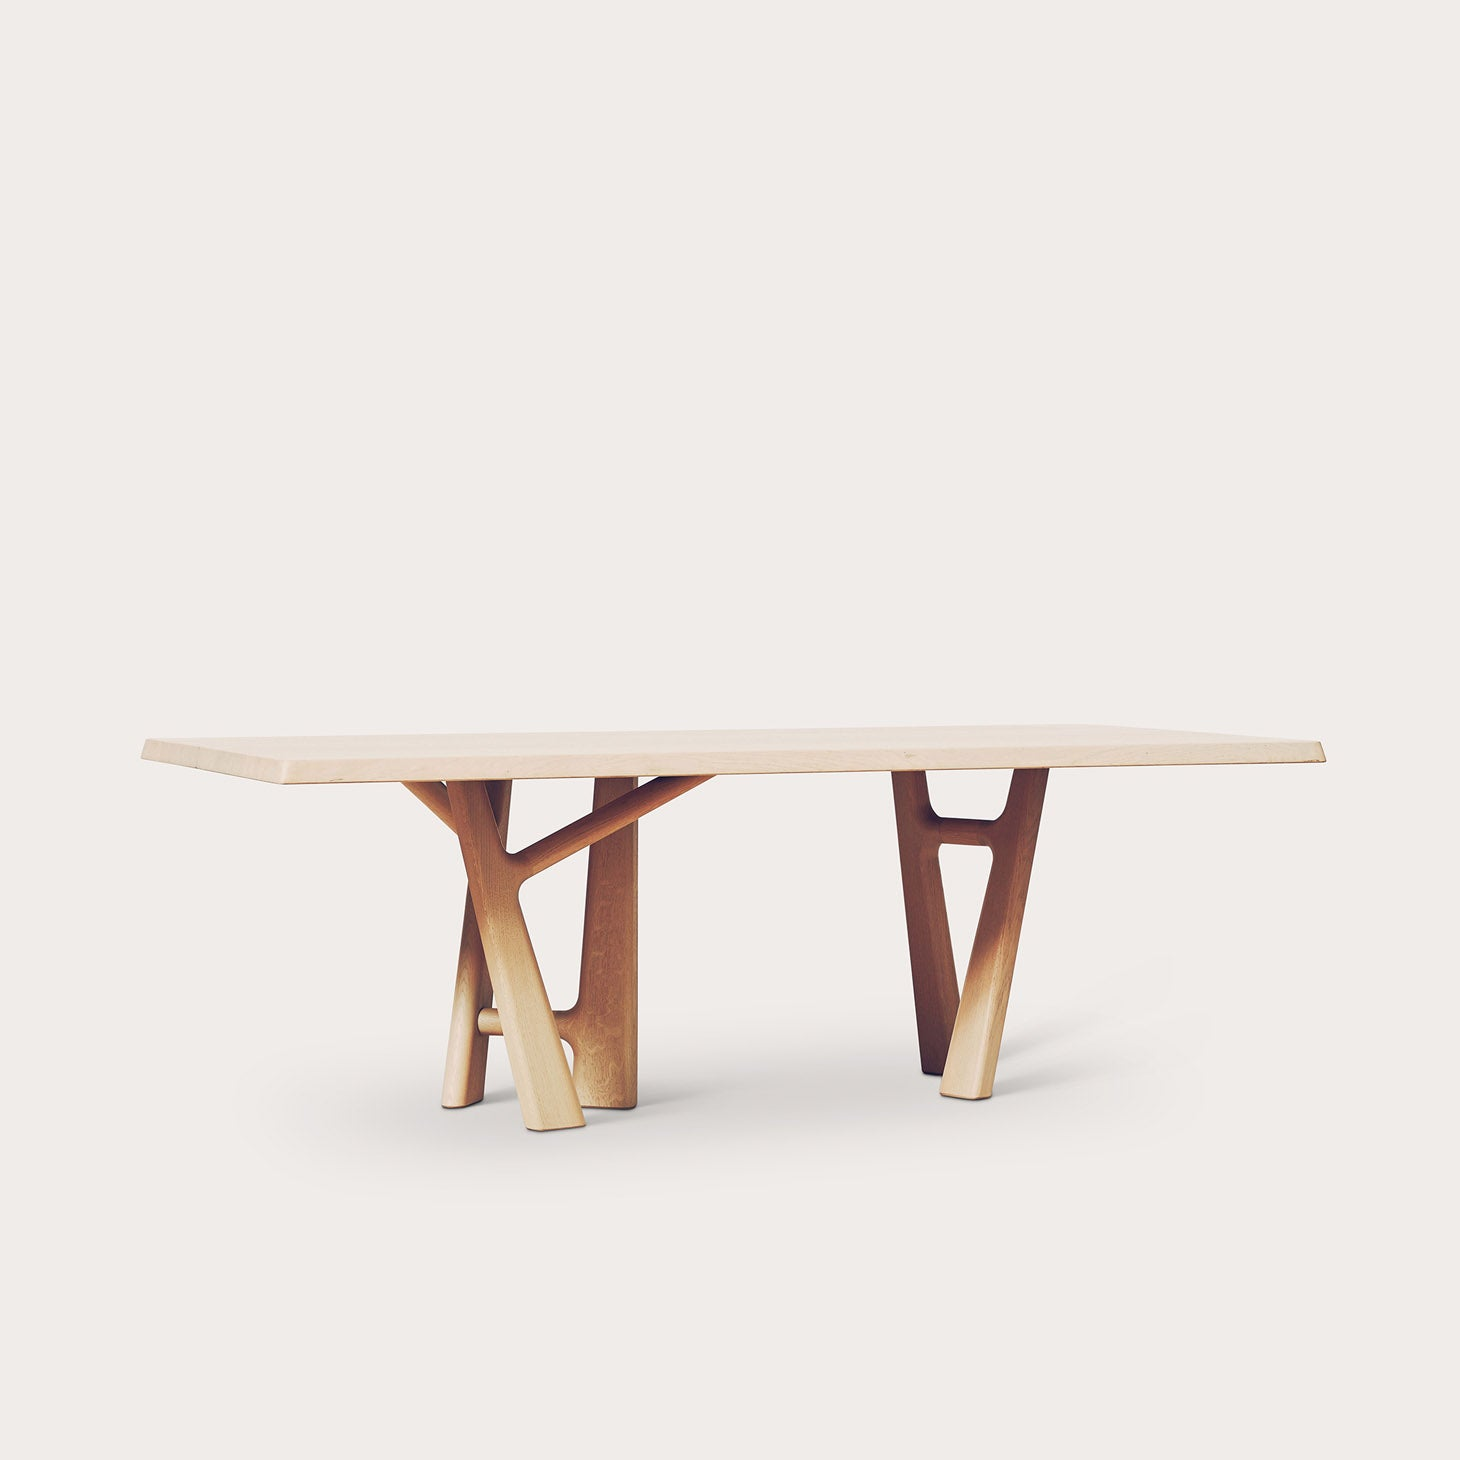 YBU Tables Jean-Pierre Tortil Designer Furniture Sku: 008-230-10433